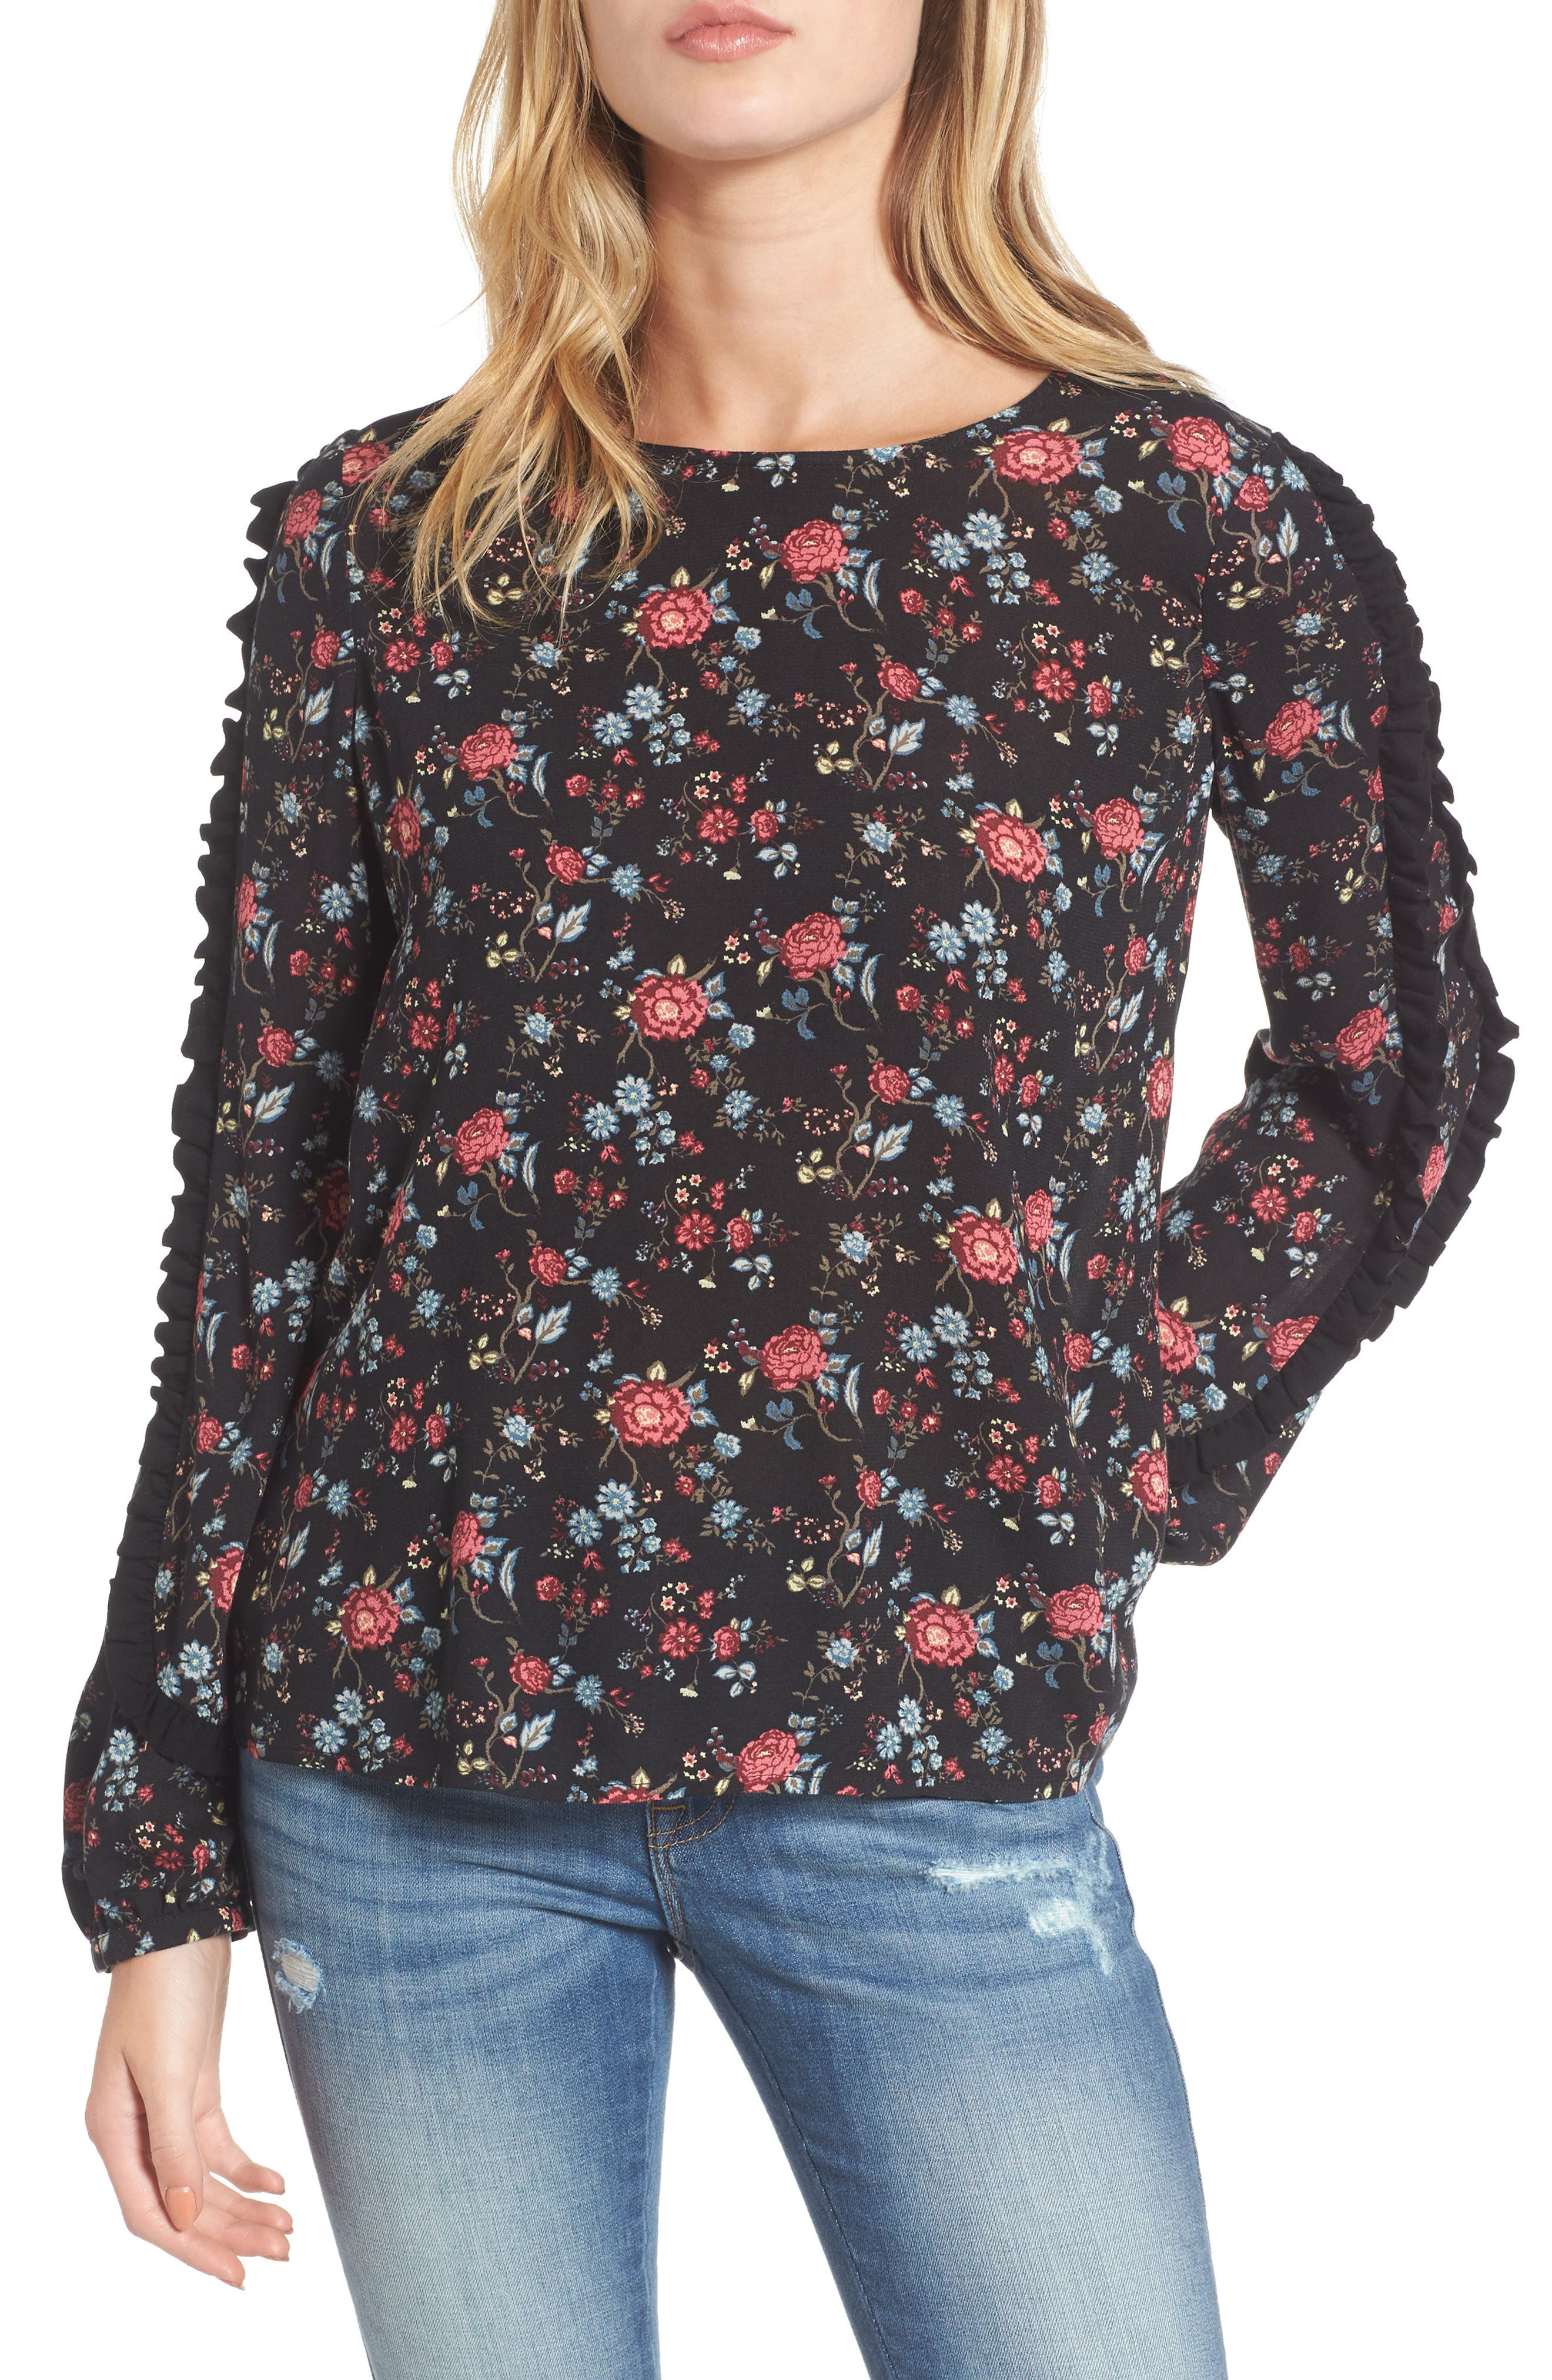 Ruffle Trim Floral Print Top,                             Main thumbnail 1, color,                             001